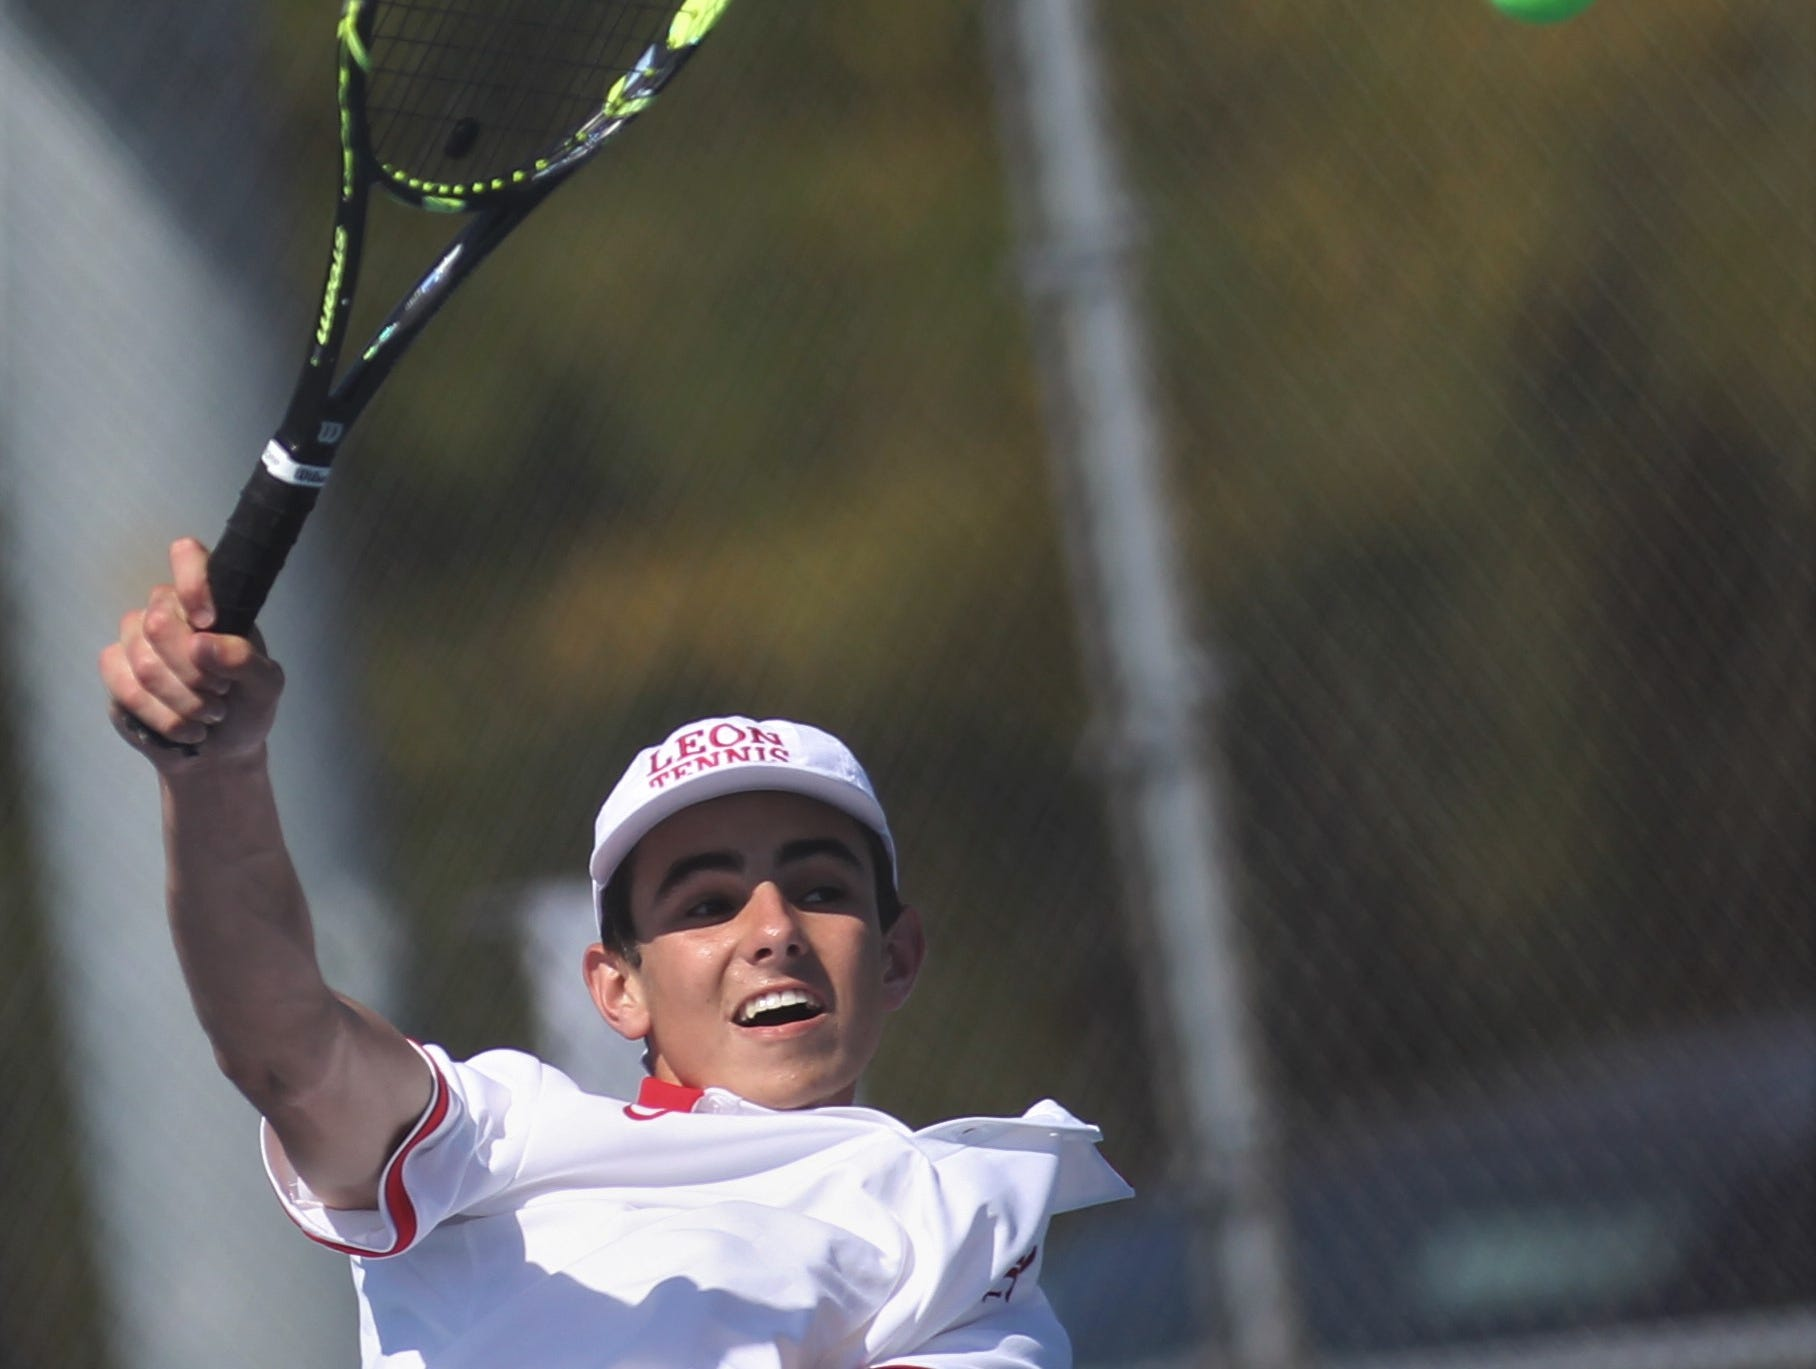 Leon sophomore Parker Kenny hits a shot during the boys and girls tennis 2019 City Tournament at Tom Brown Park on March 12, 2019.